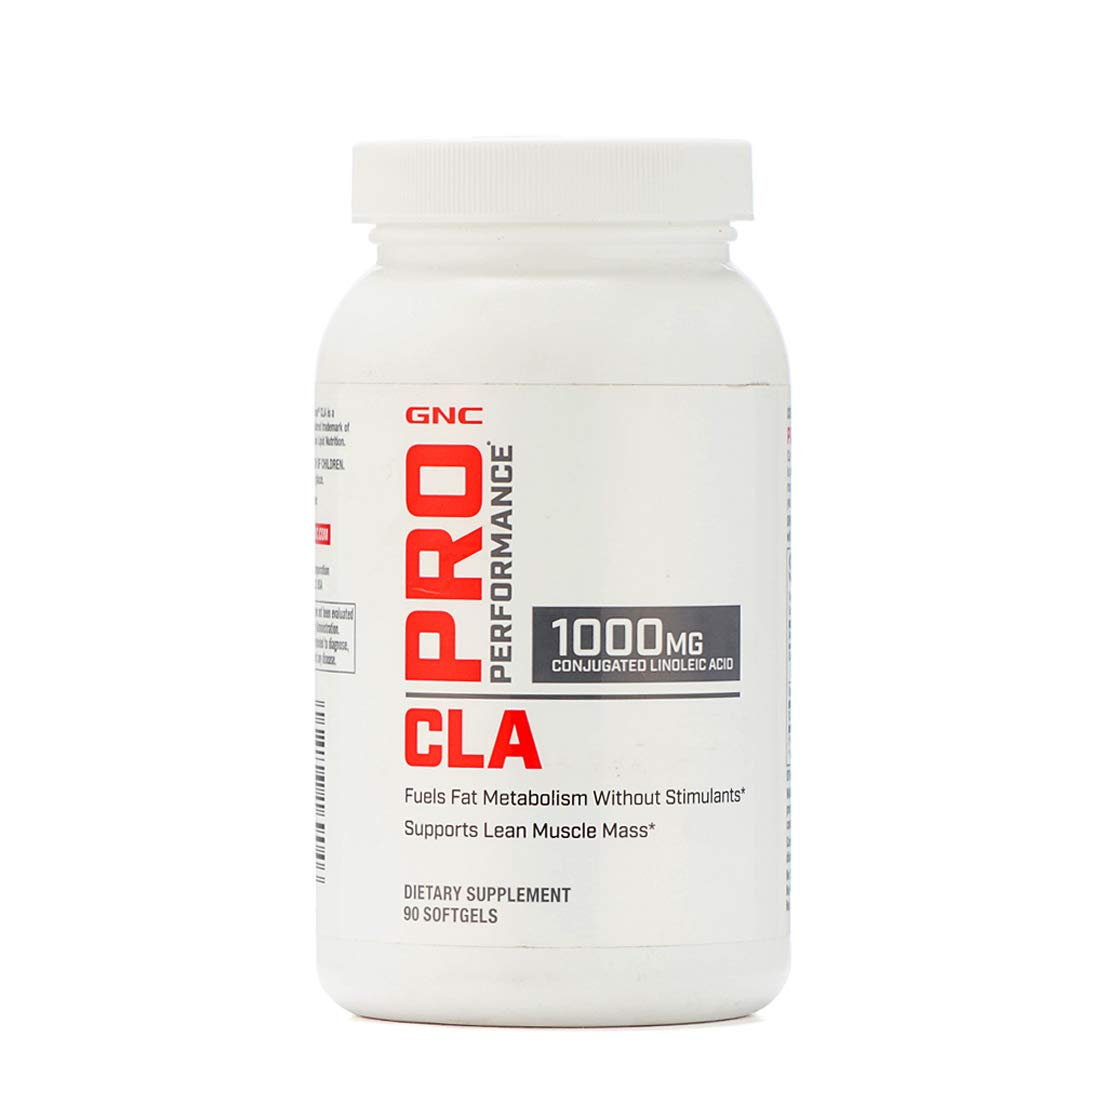 GNC Pro Performance CLA 90 softgels